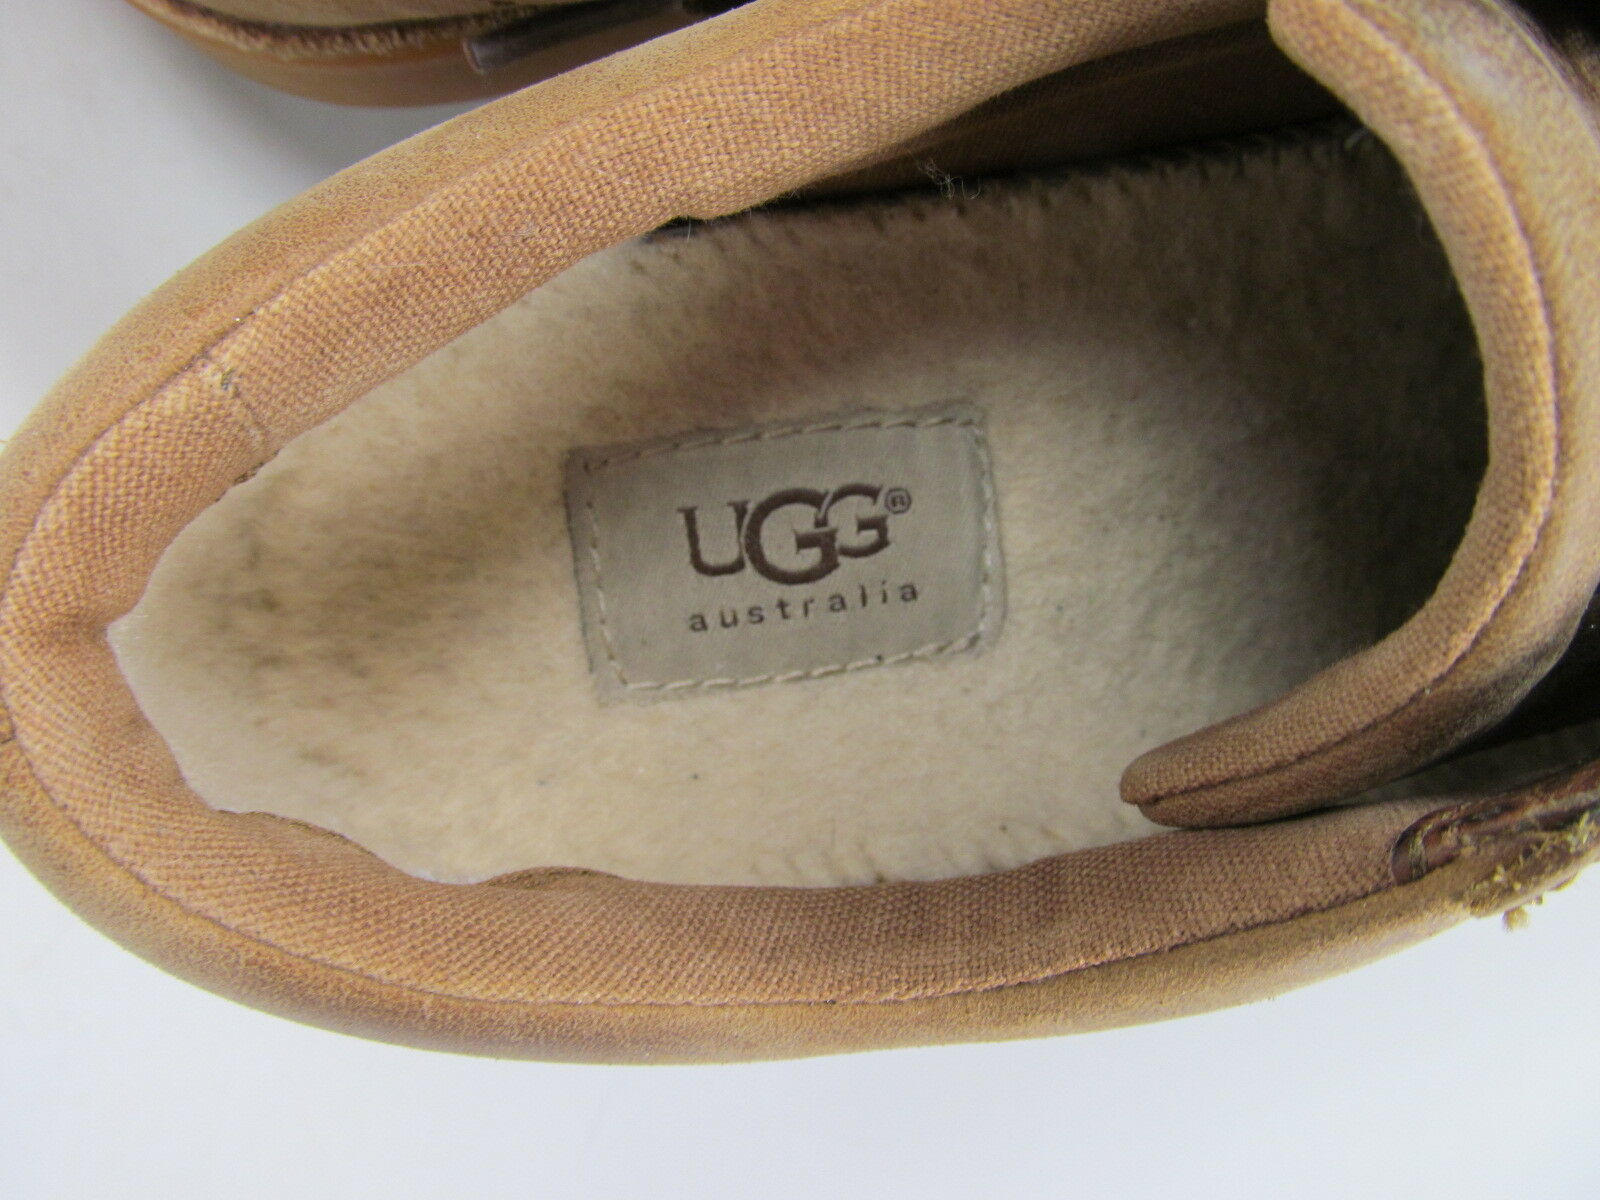 UGG  Australia Tan Distressed Leather Sneakers Mens size 7.5 (EU 40) S/N 1006875 image 7